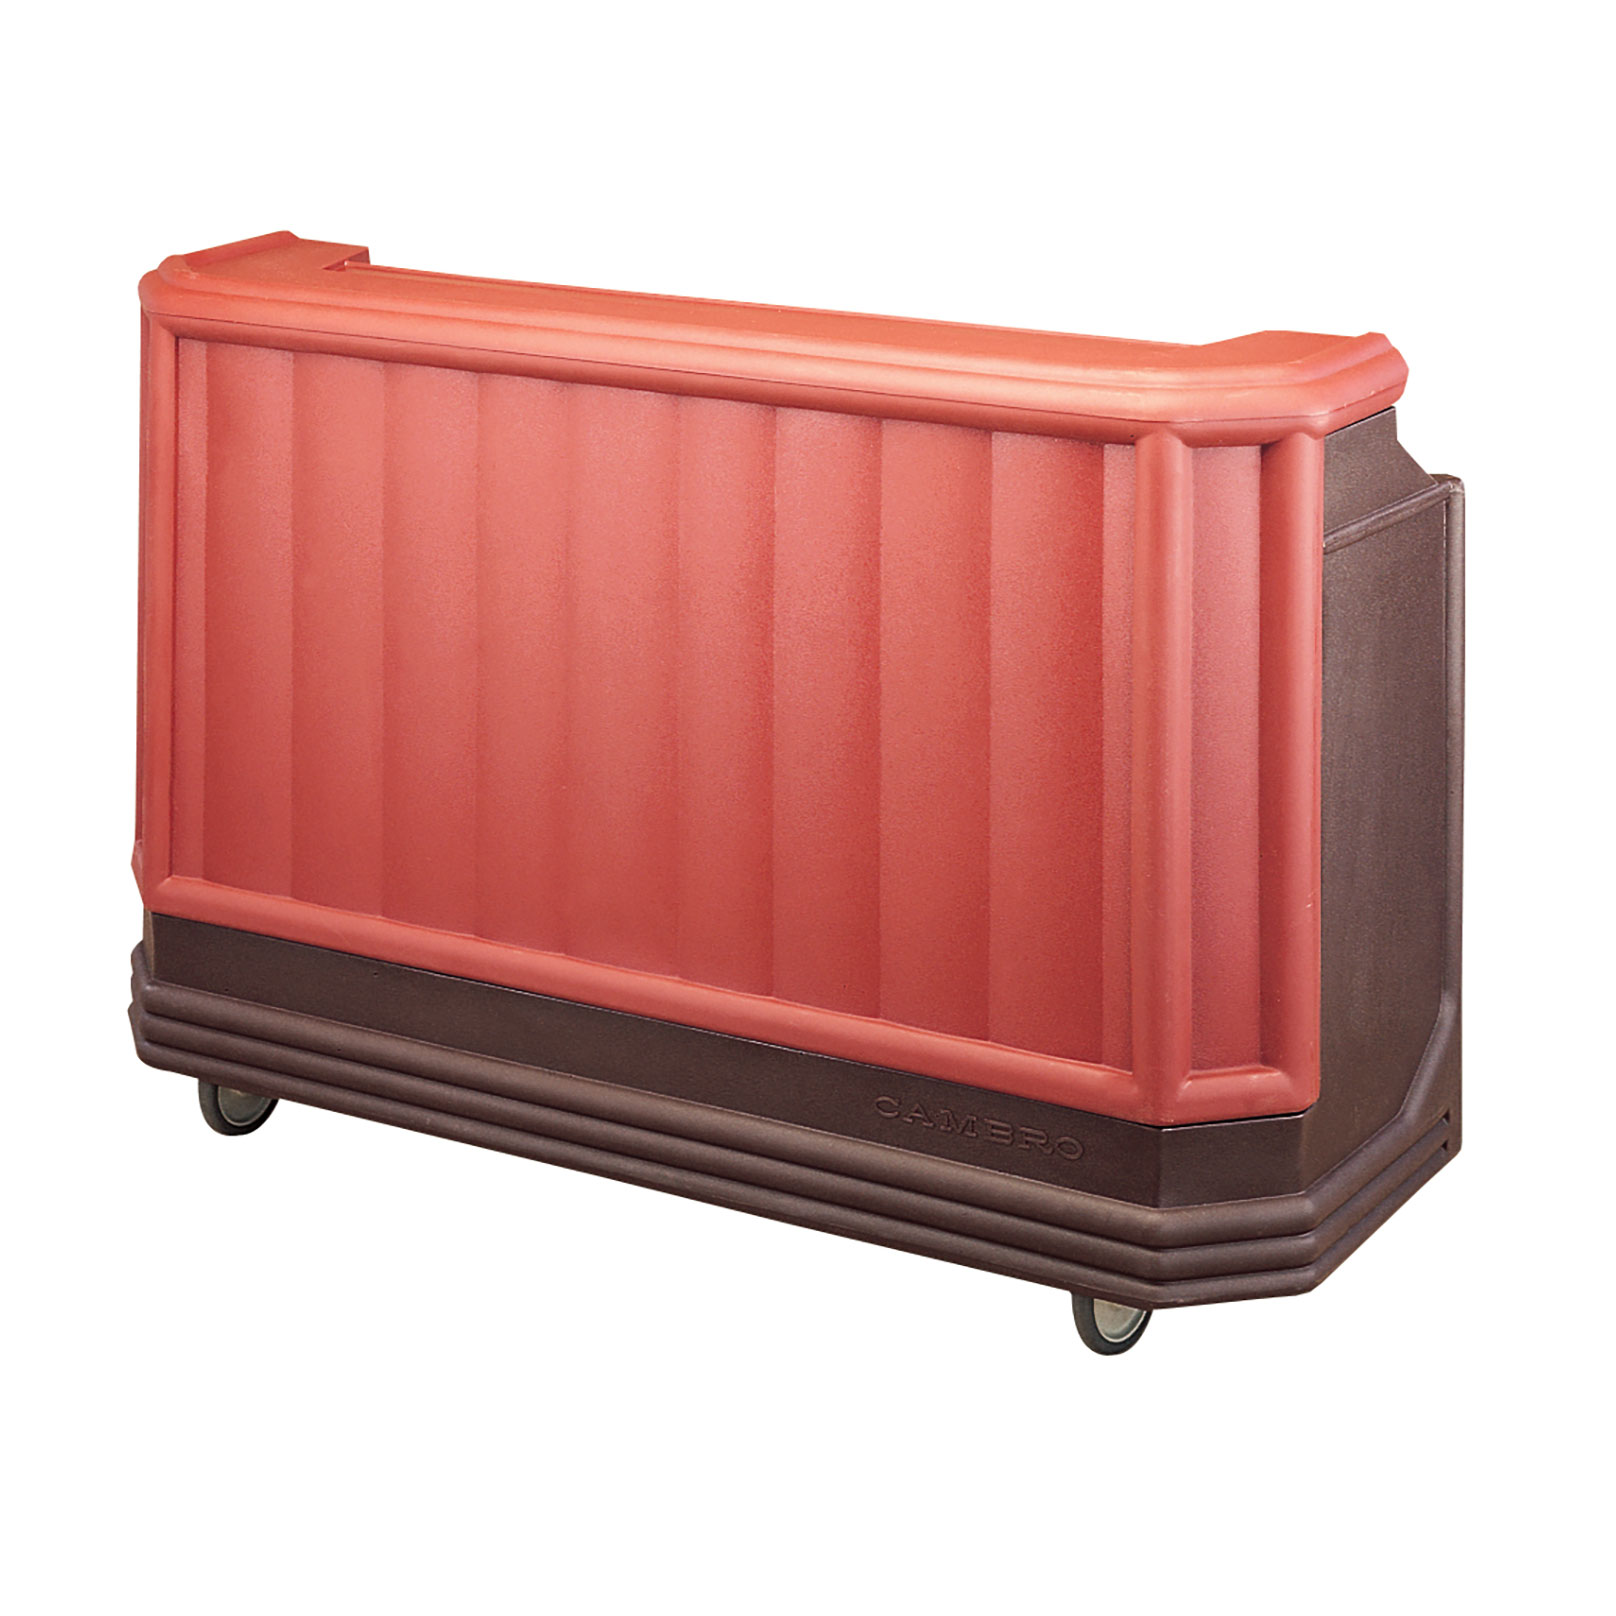 Cambro BAR730PMT189 portable bars